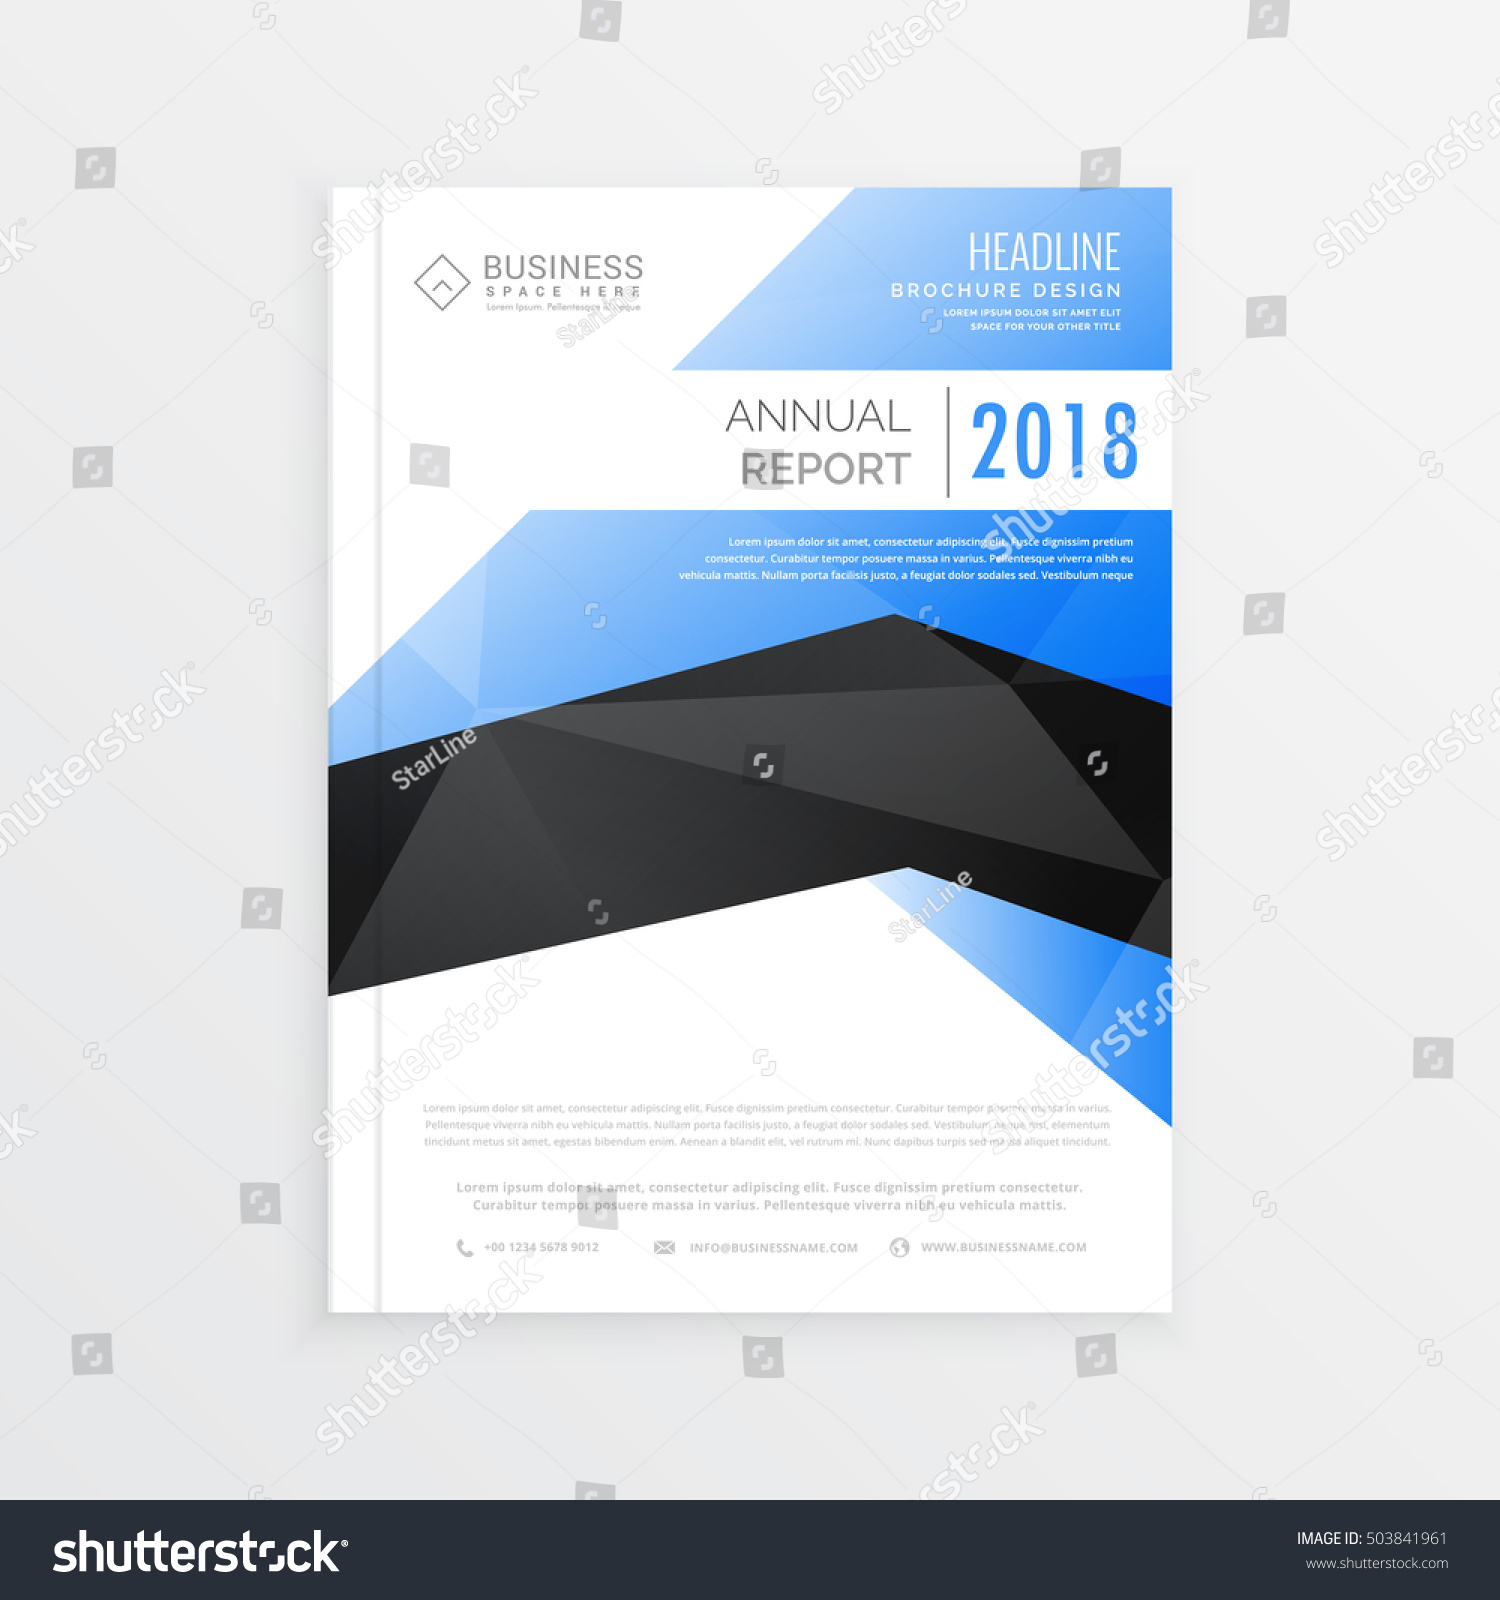 awesome business brochure template blue and black theme awesome business brochure template blue and black theme annual report cover page design in